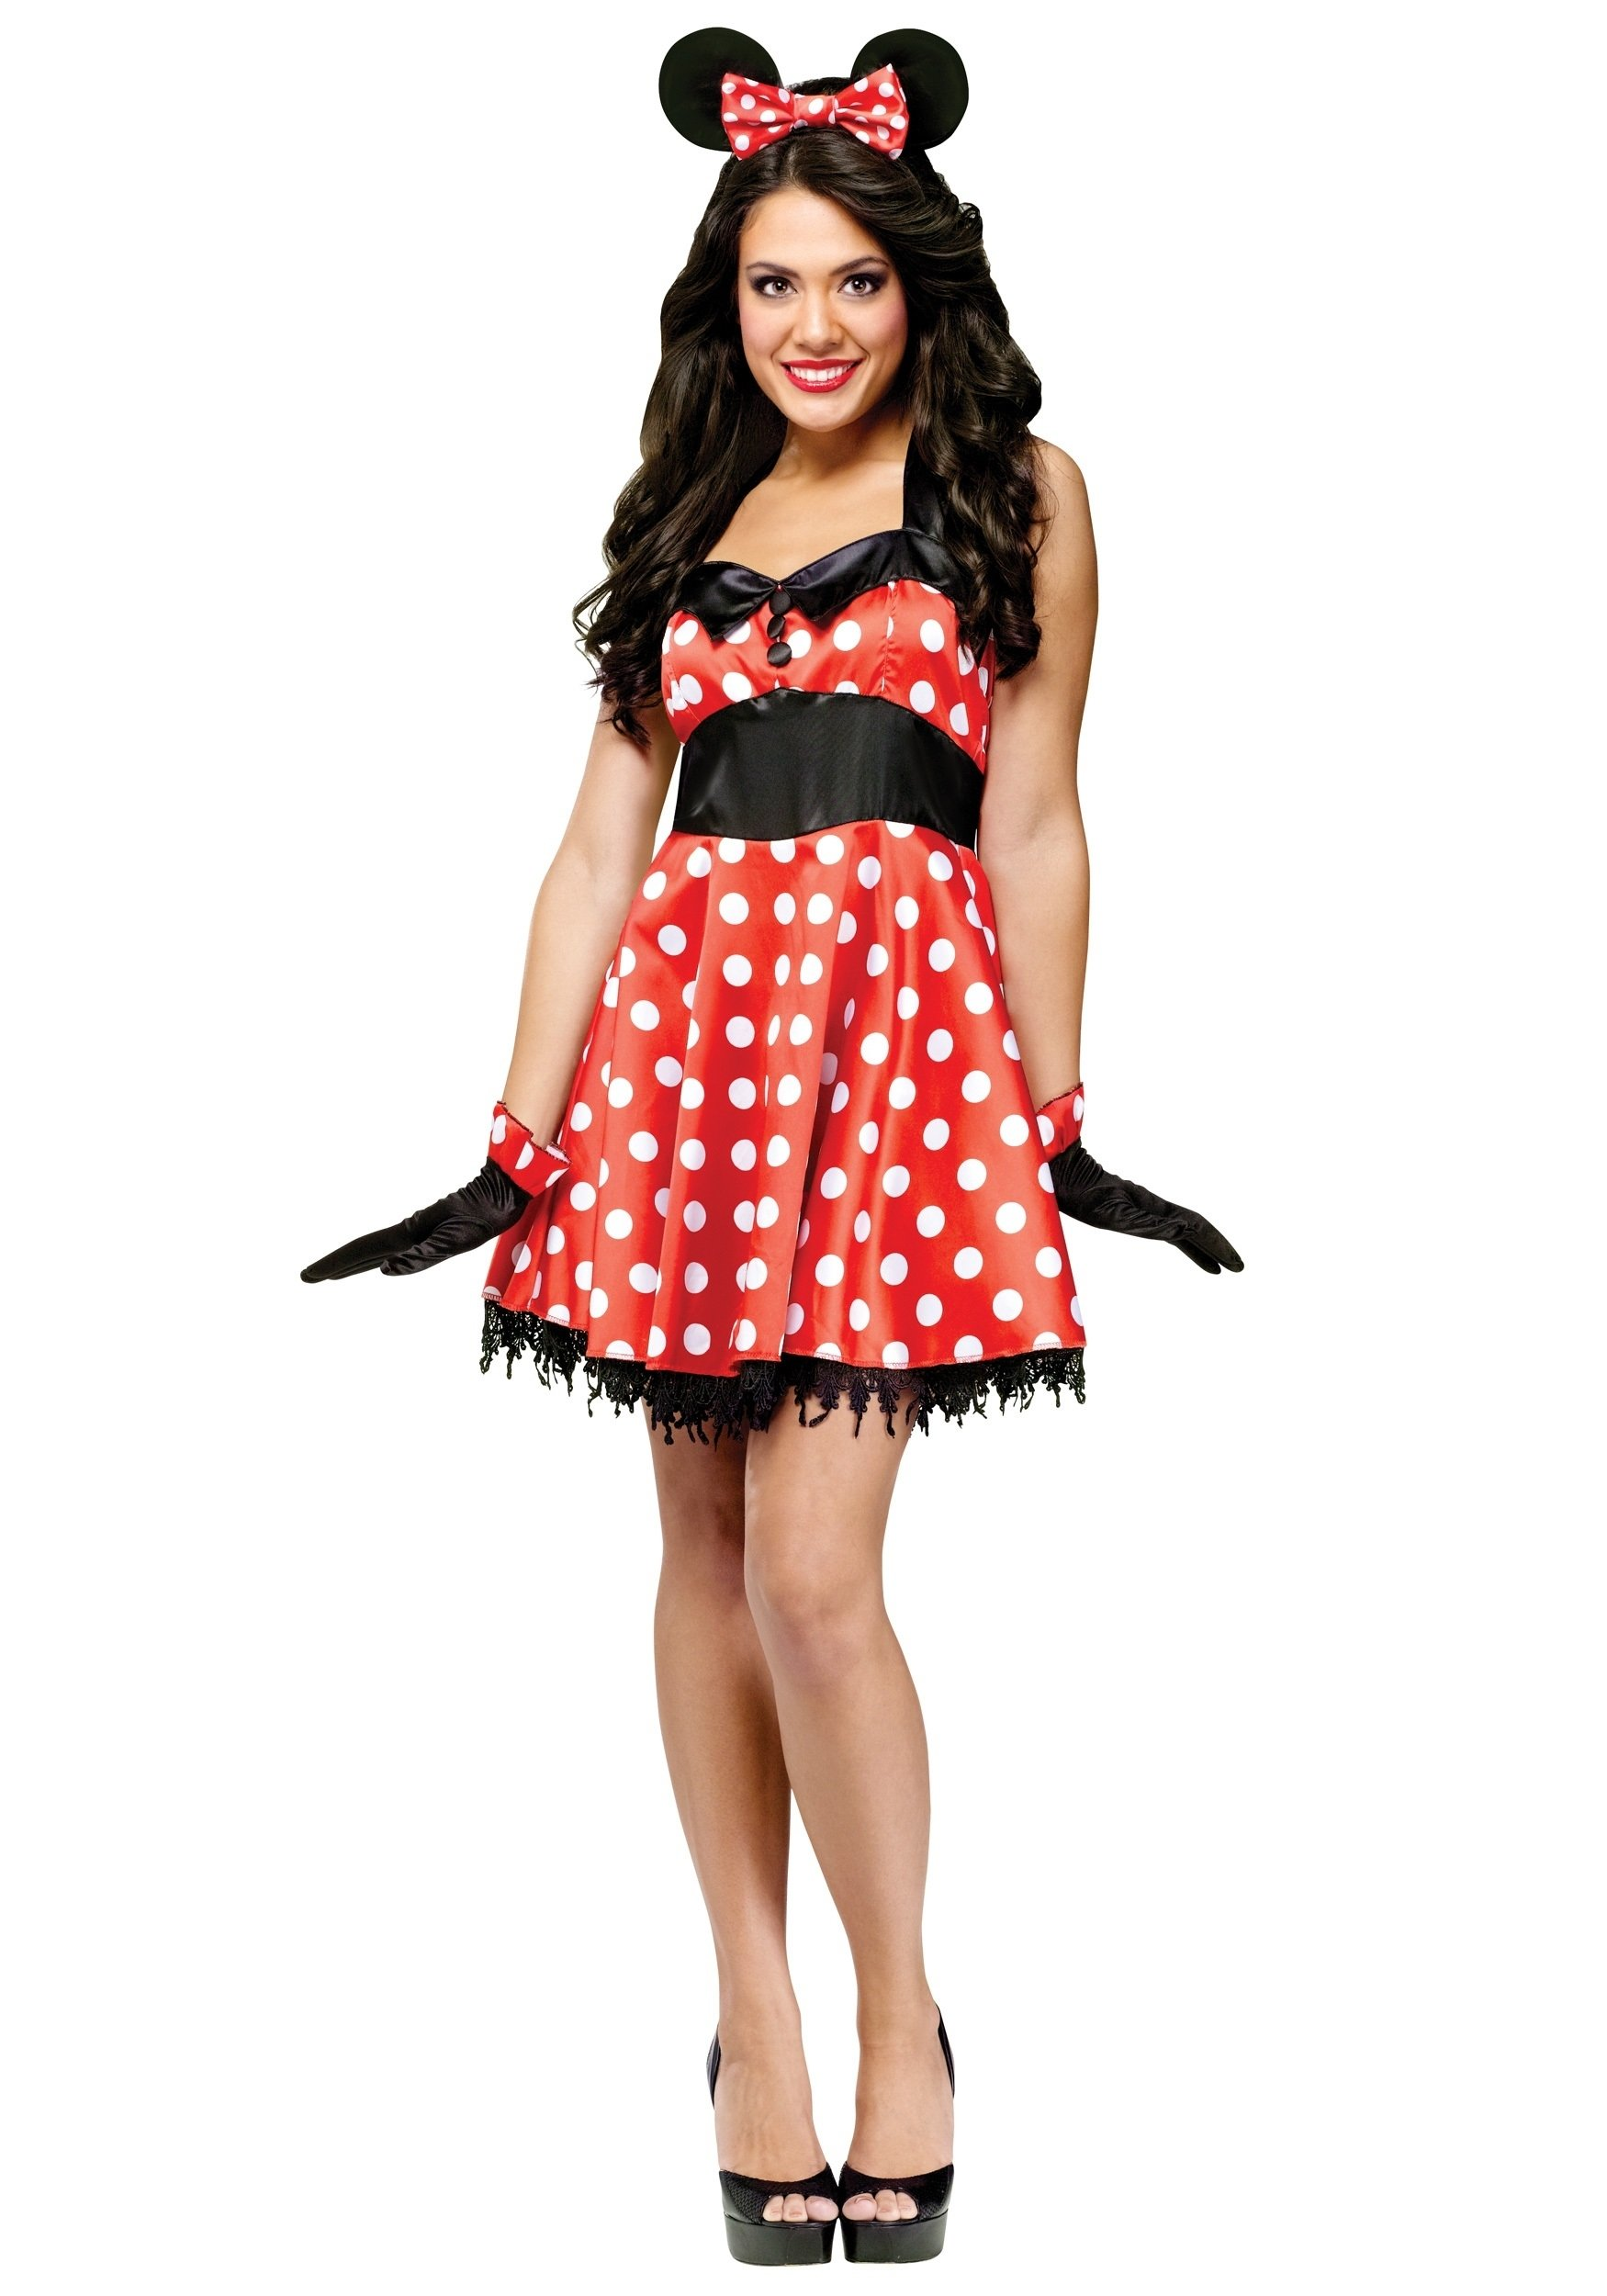 10 Great Minnie Mouse Costume Ideas For Women retro miss mouse costume 2020